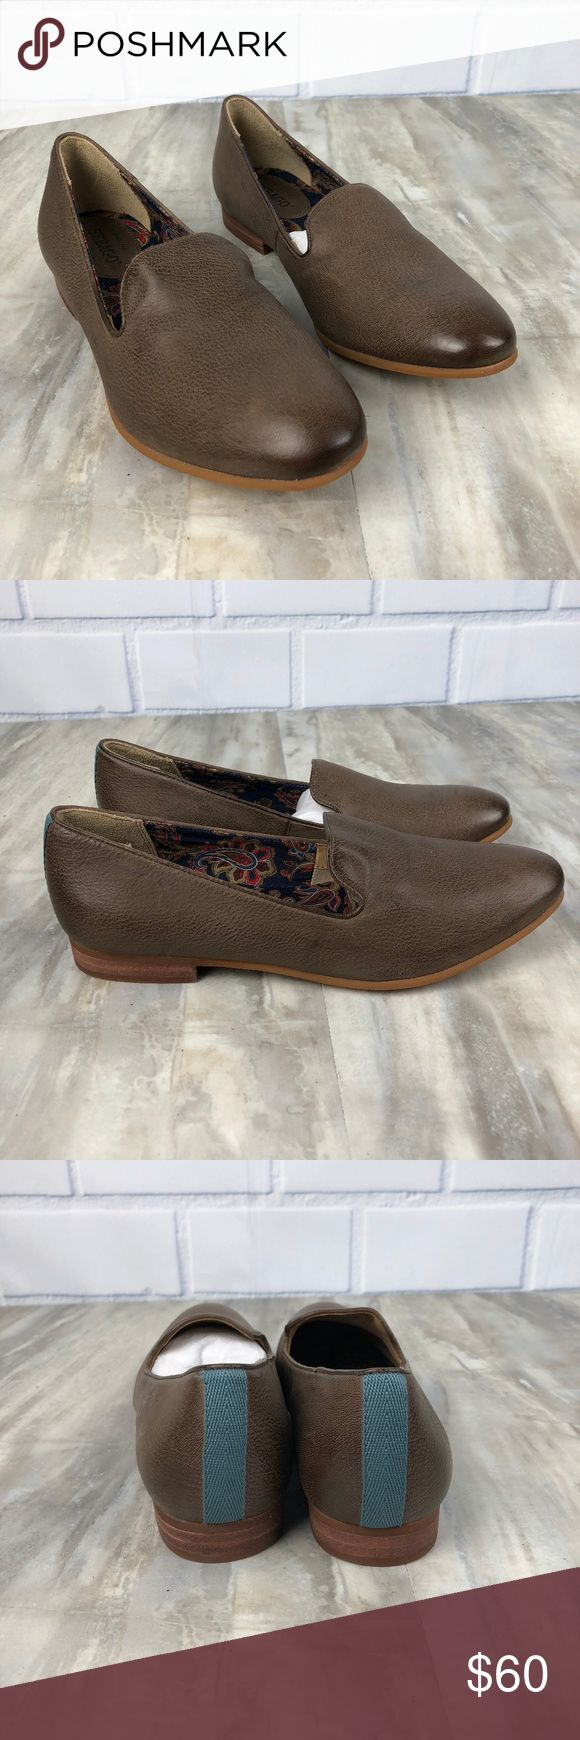 Sebago Hutton Smoking Flats Leather Size 7 New without box Women's Sebago Hutton Smoking Flat Retail $120 Size 7  Brown Leather Flats Slip-On style shoes Nonsmoking home No box May be marks from not being stored in a box - good condition - please see photos. Sebago Shoes Flats & Loafers